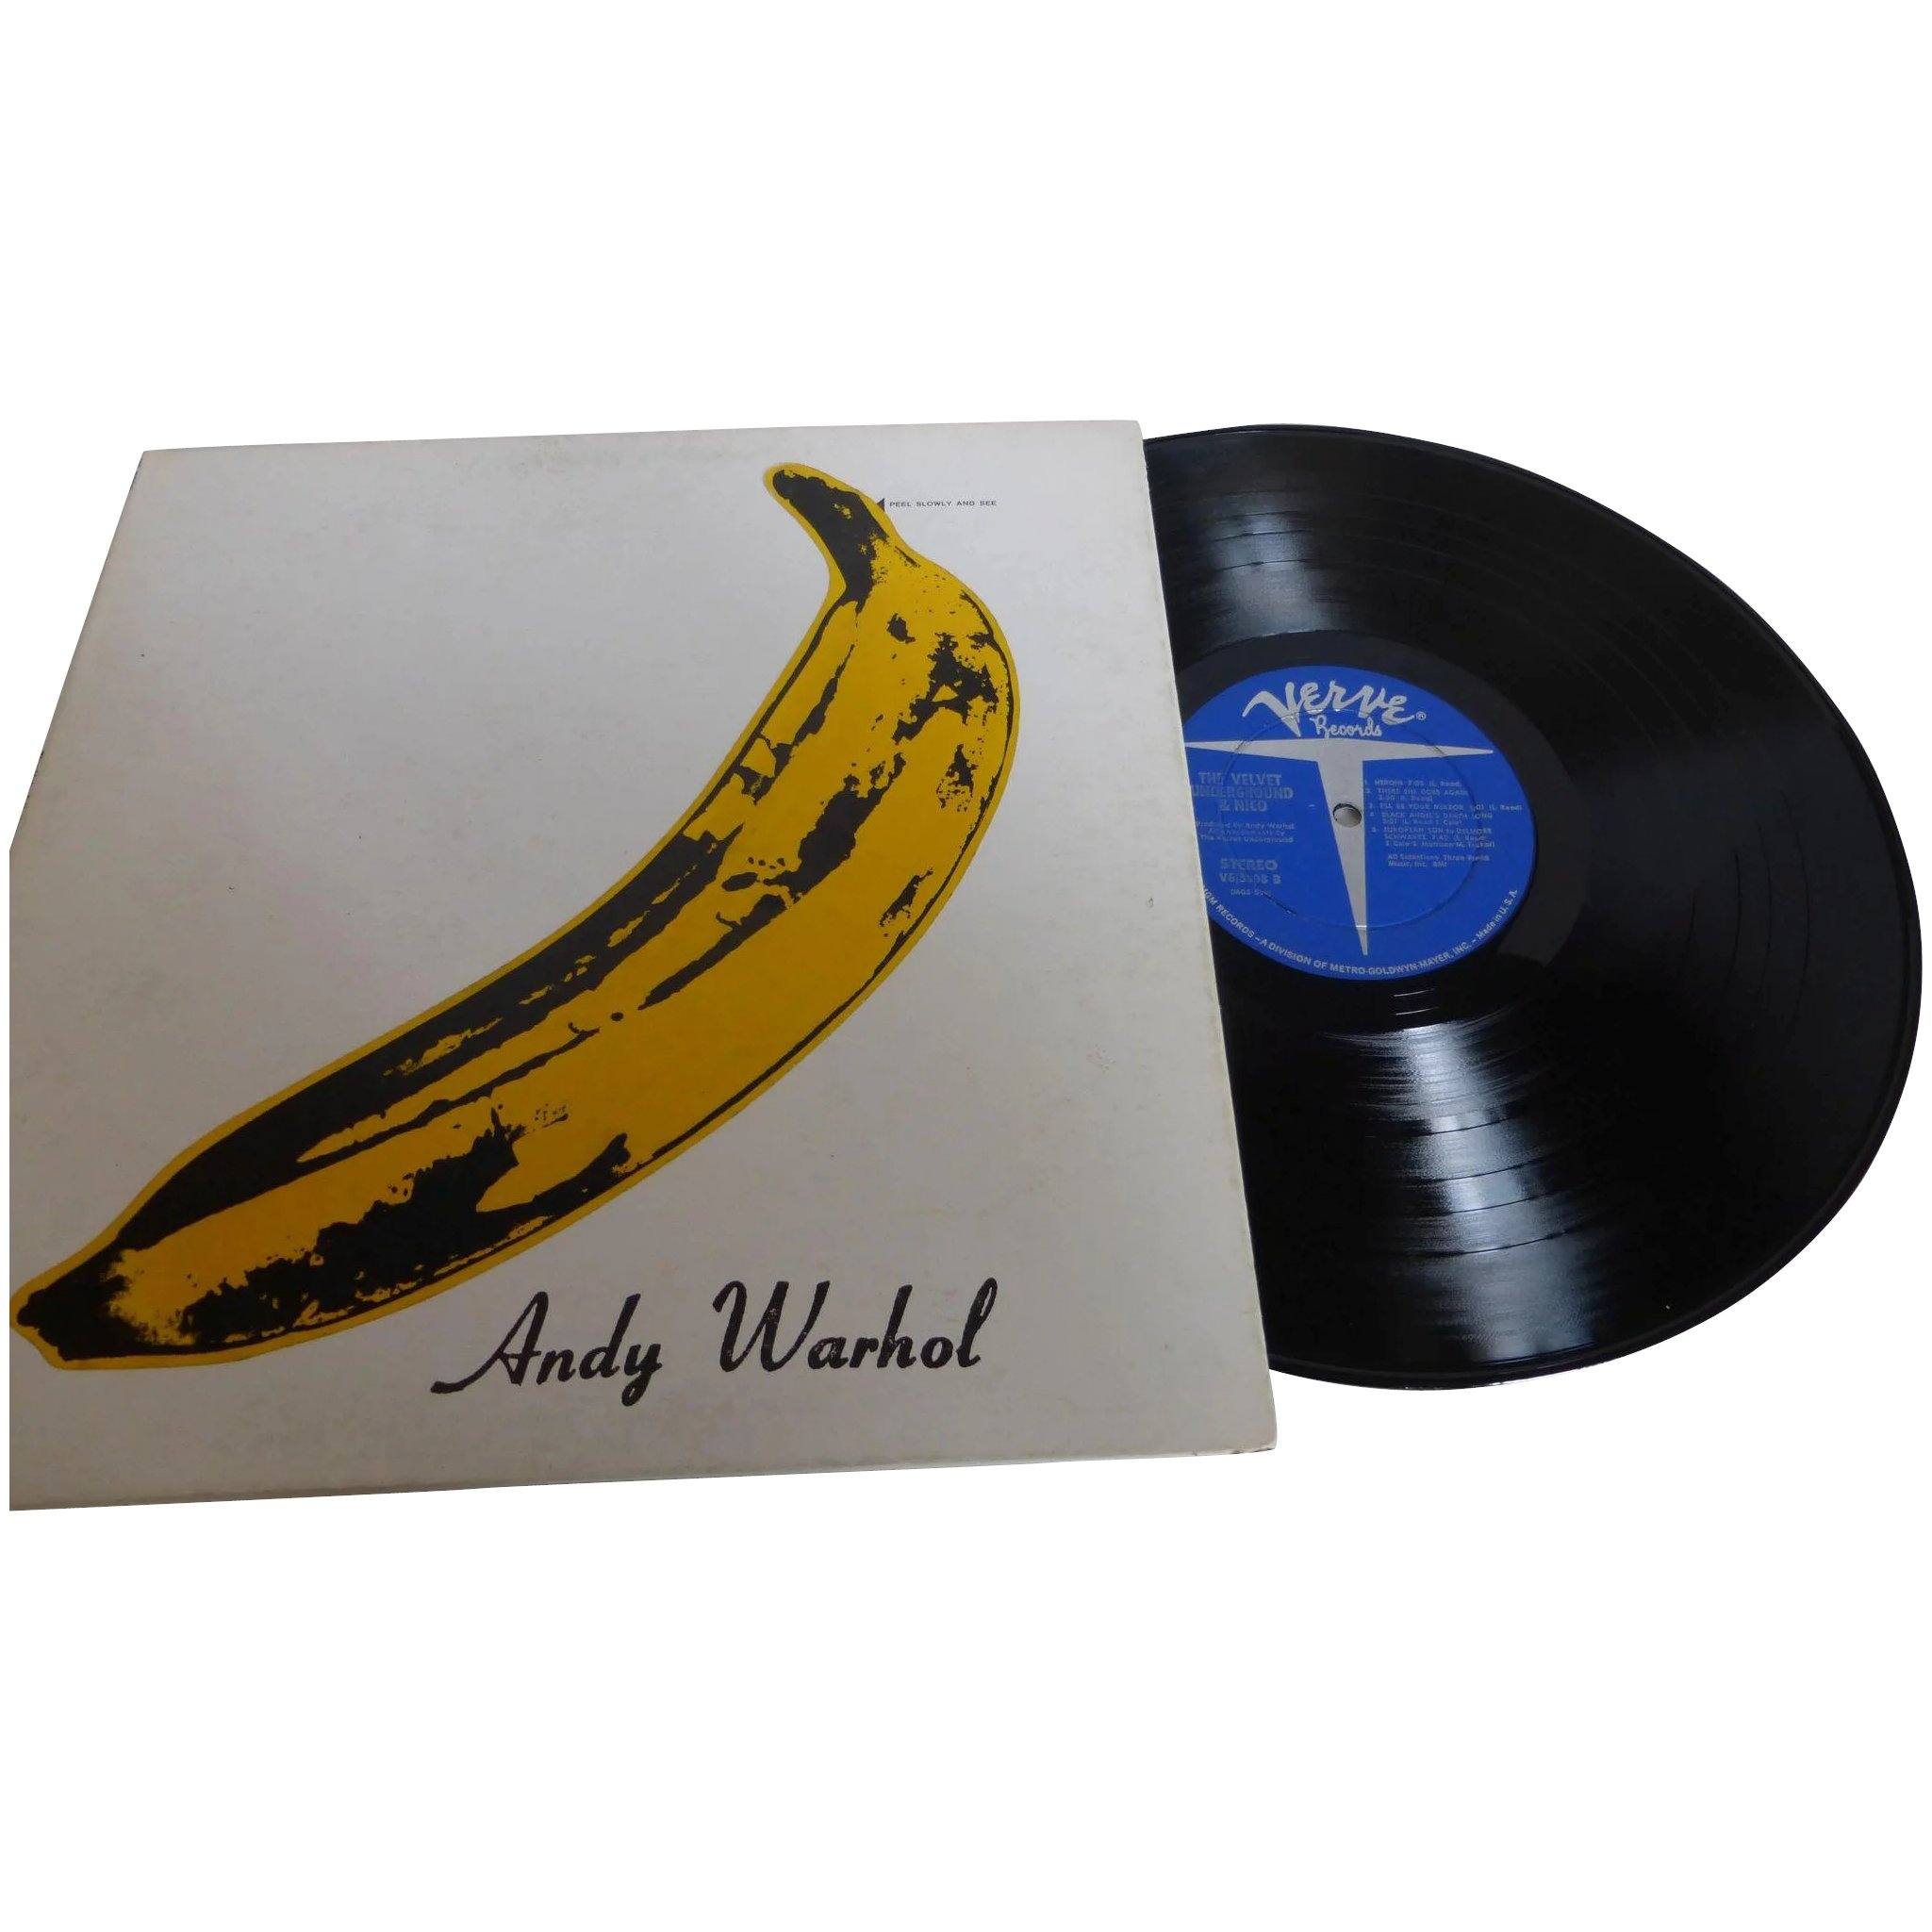 Rare The Velvet Underground Nico With Andy Warhol Banana Cover Historique Ruby Lane